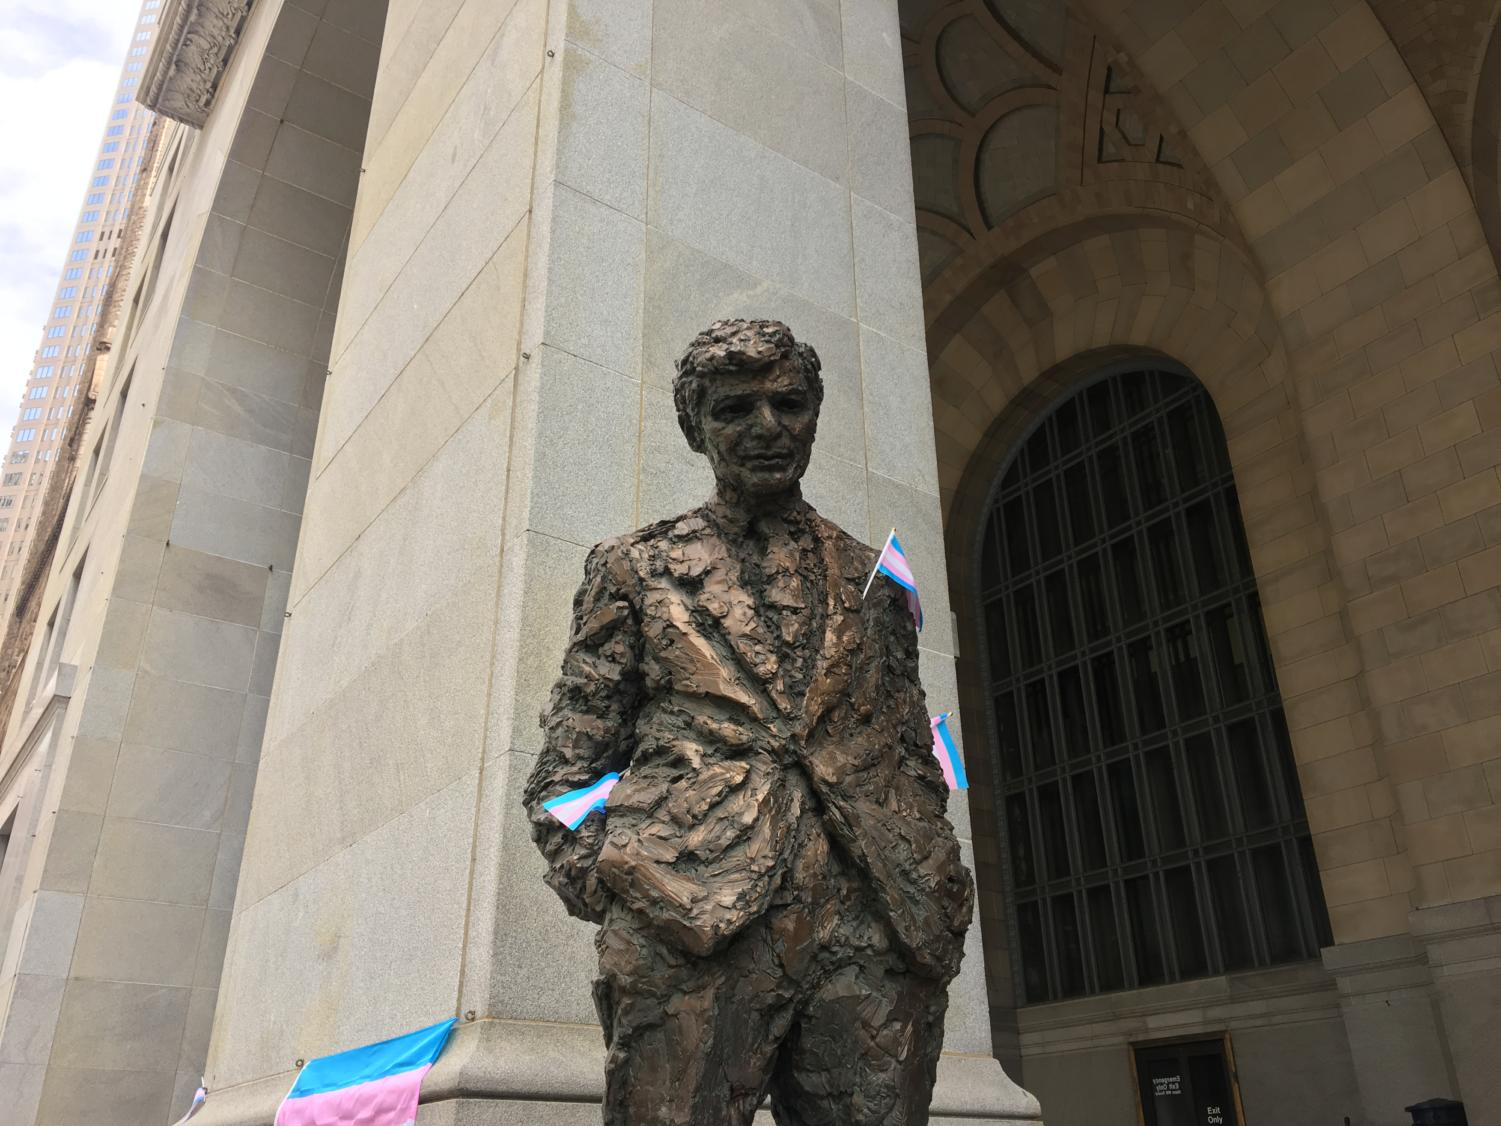 Transgender rights activists placed transgender pride flags on a statue of former Pittsburgh mayor Richard Caliguiri.